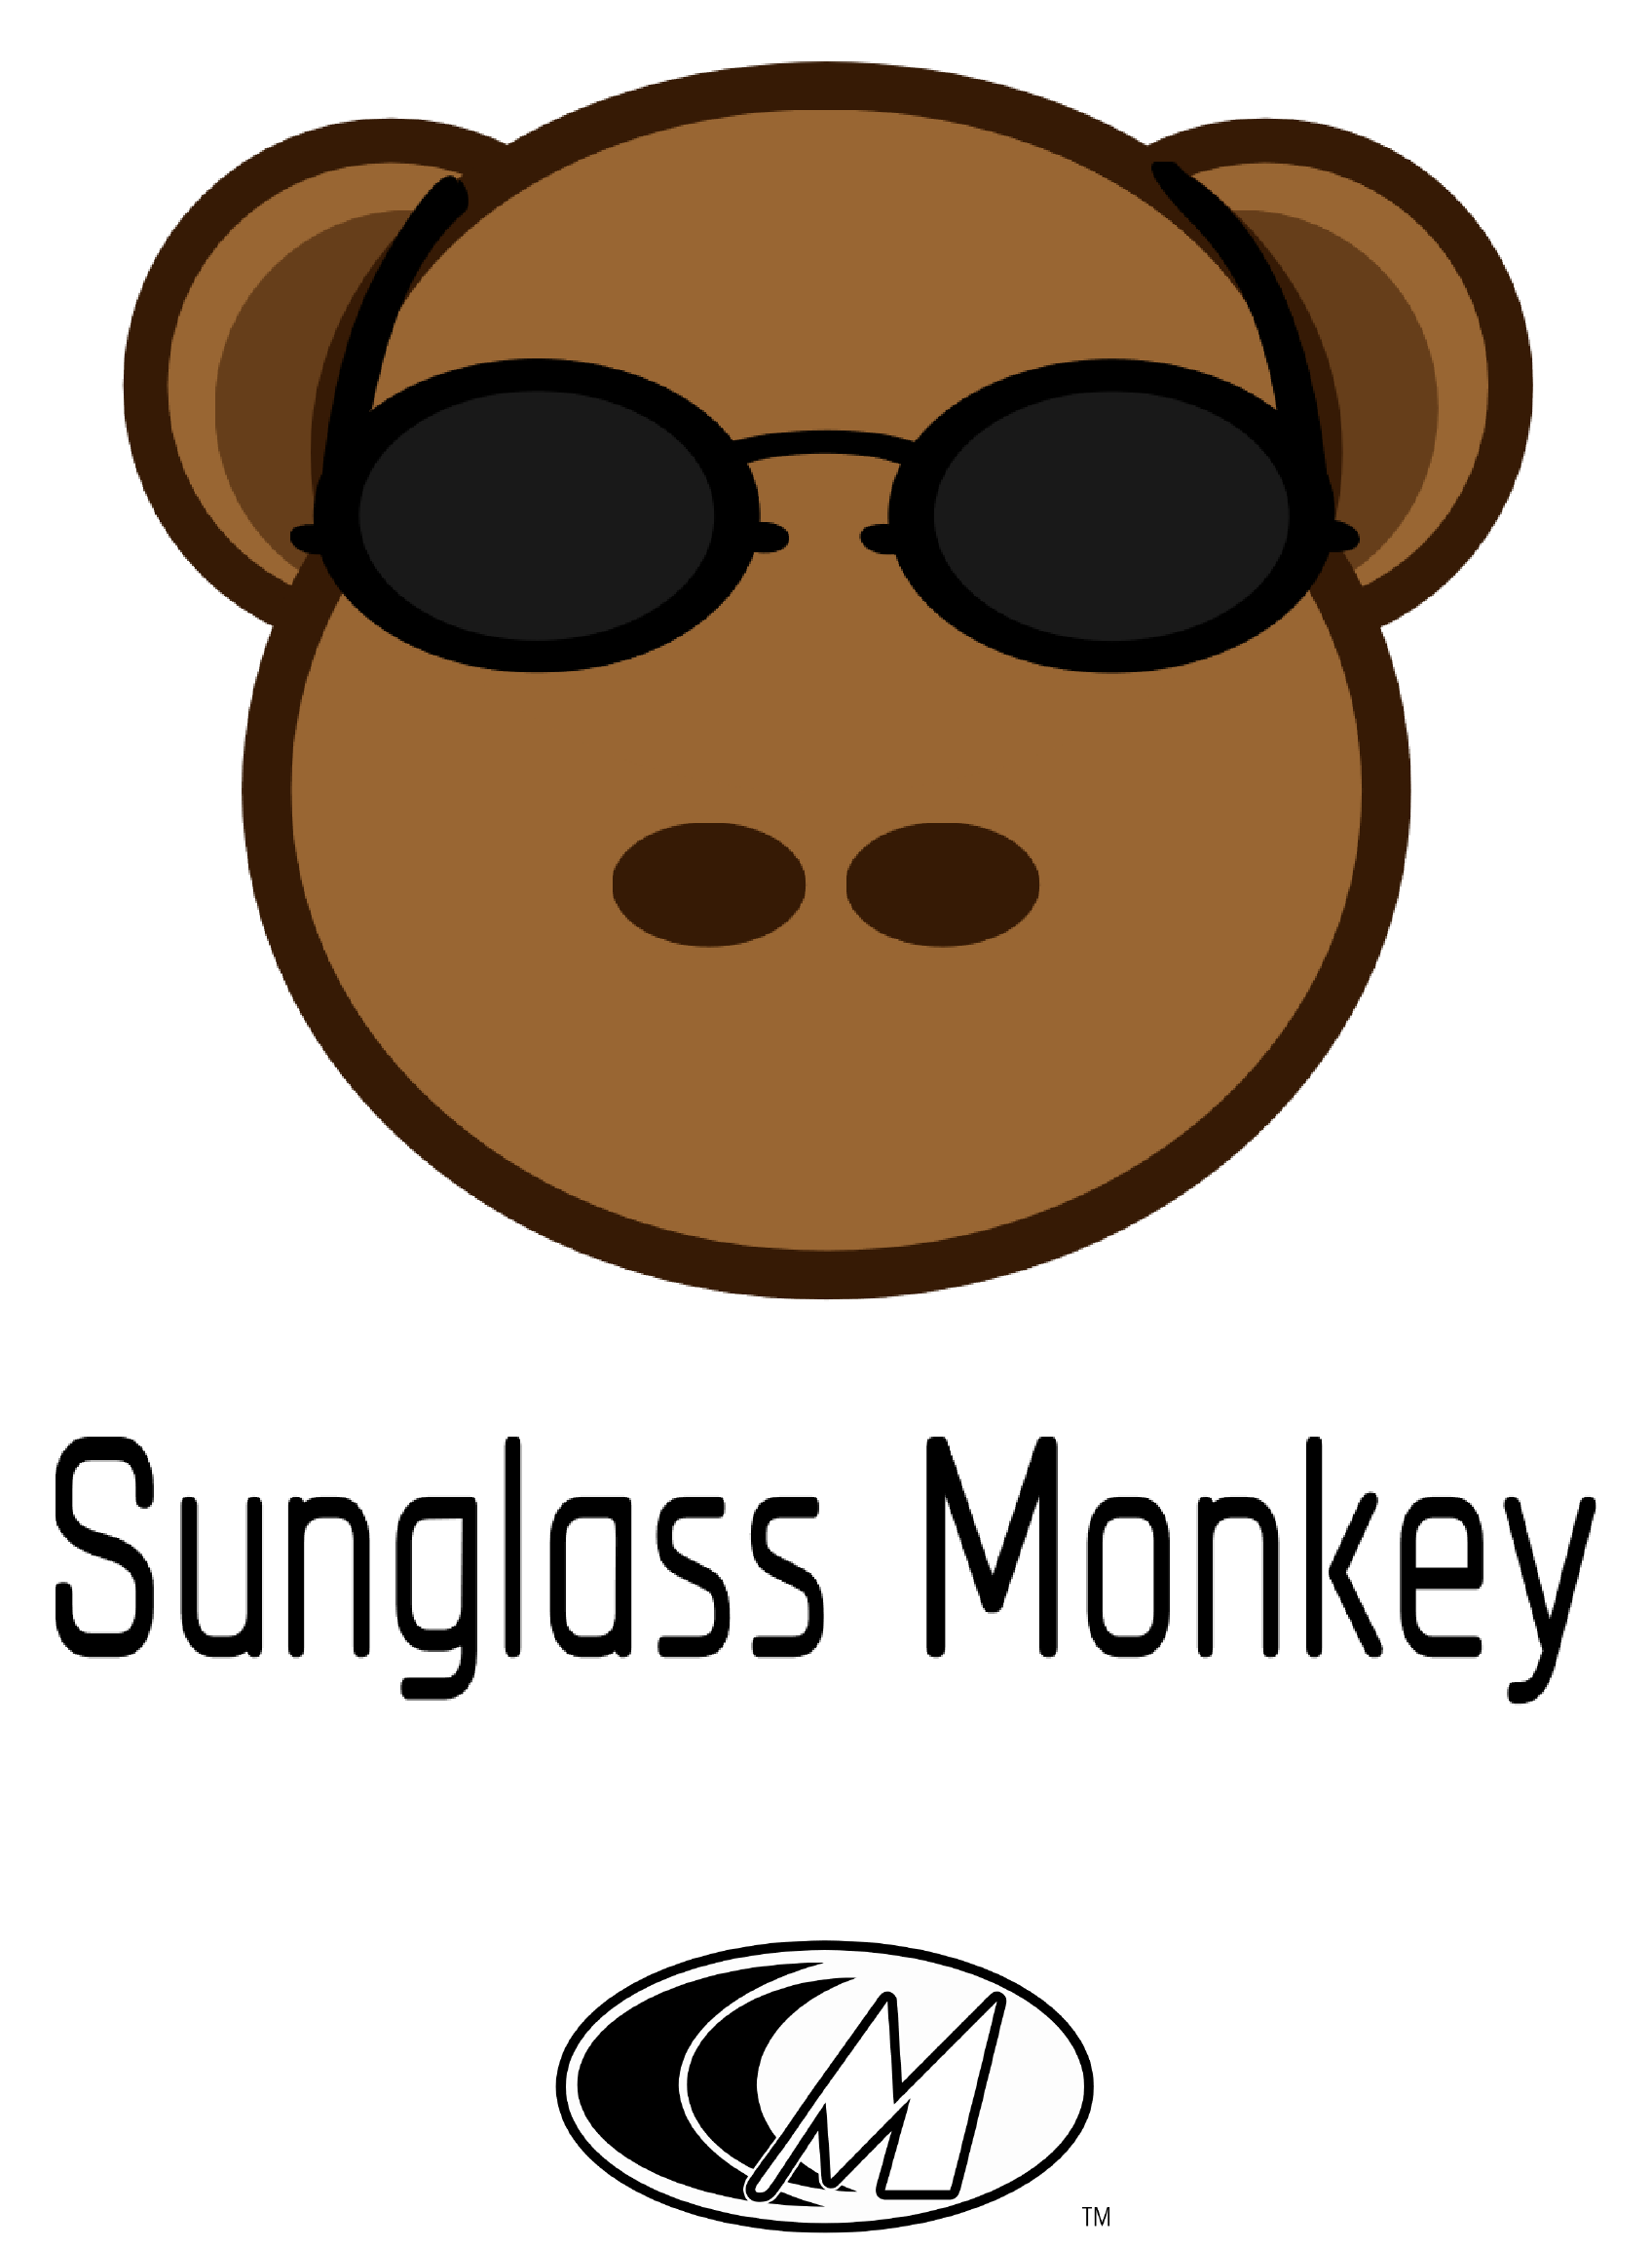 Sunglass Monkey with my logo